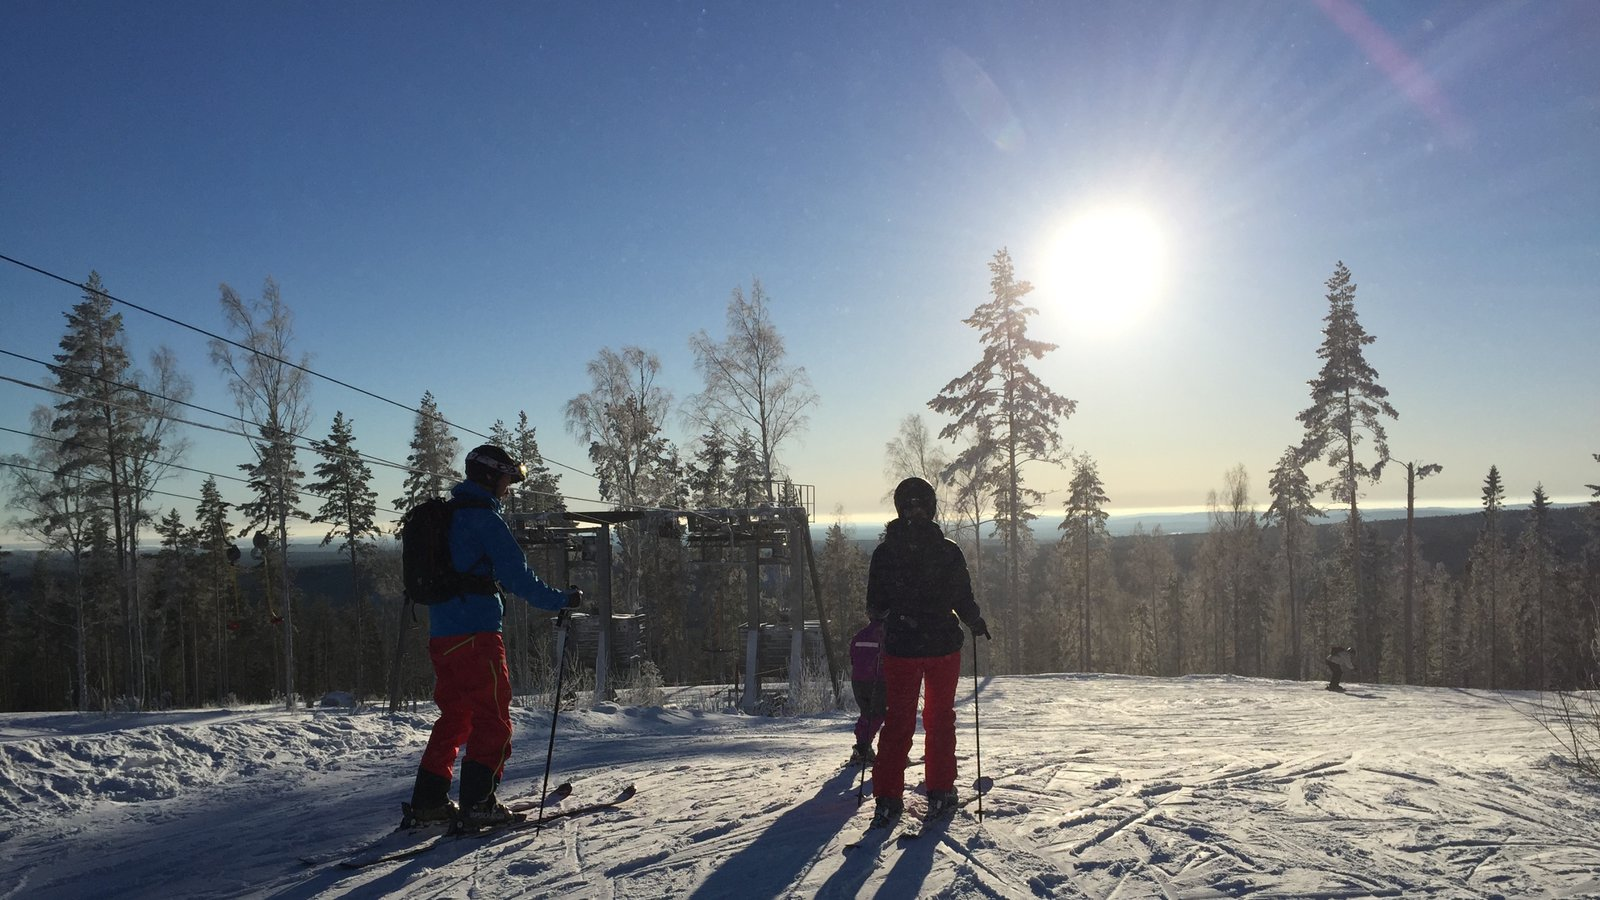 Kungsberget Ski Resort which includes snow skiing and snow as well as a small group of people